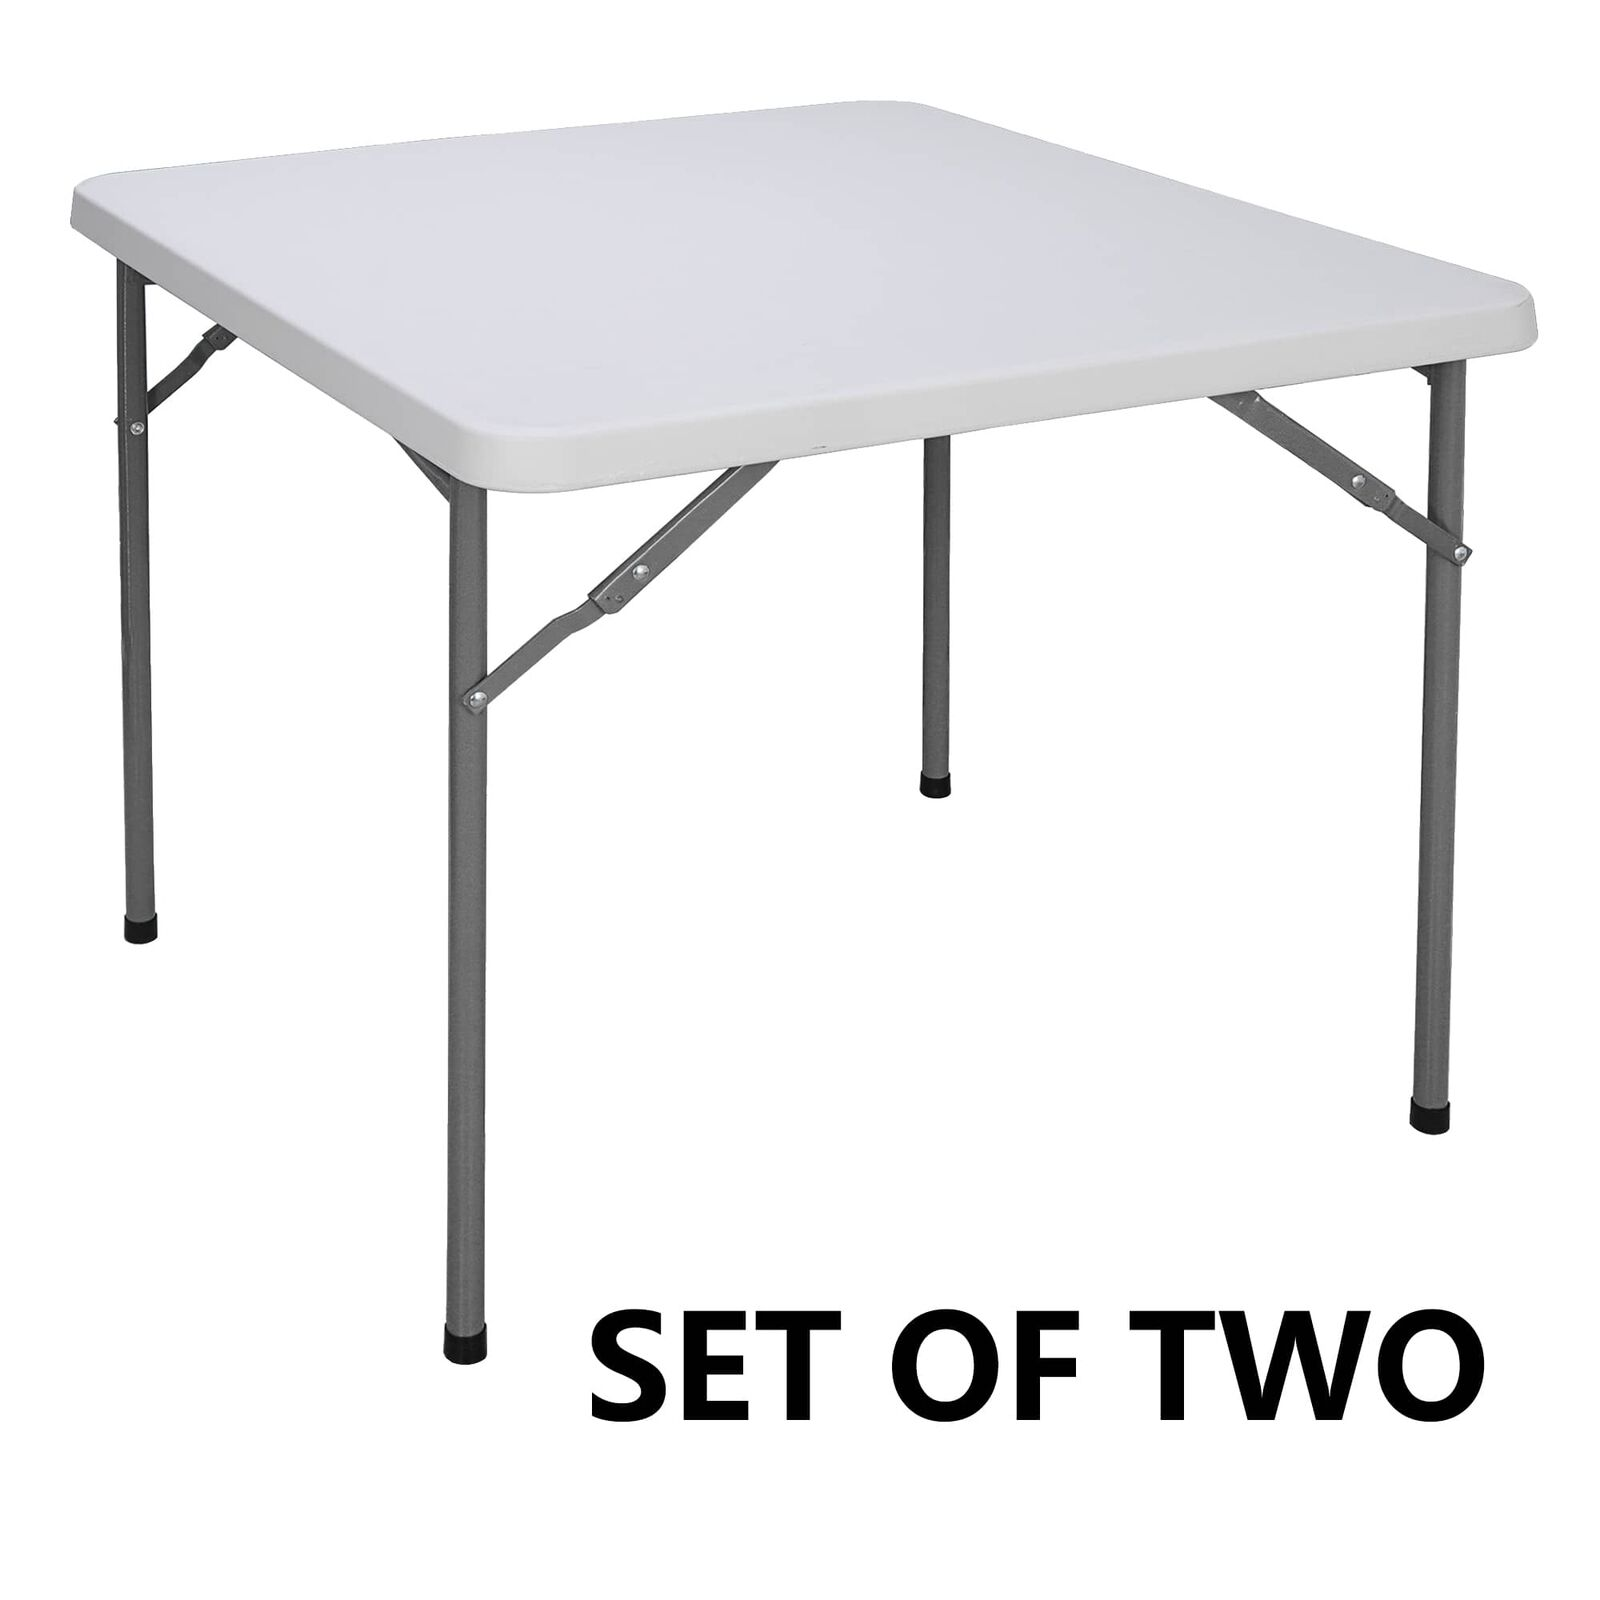 2PCS 3ft Height Adjustable Craft Camping and Utility Folding Carry Table White Furniture